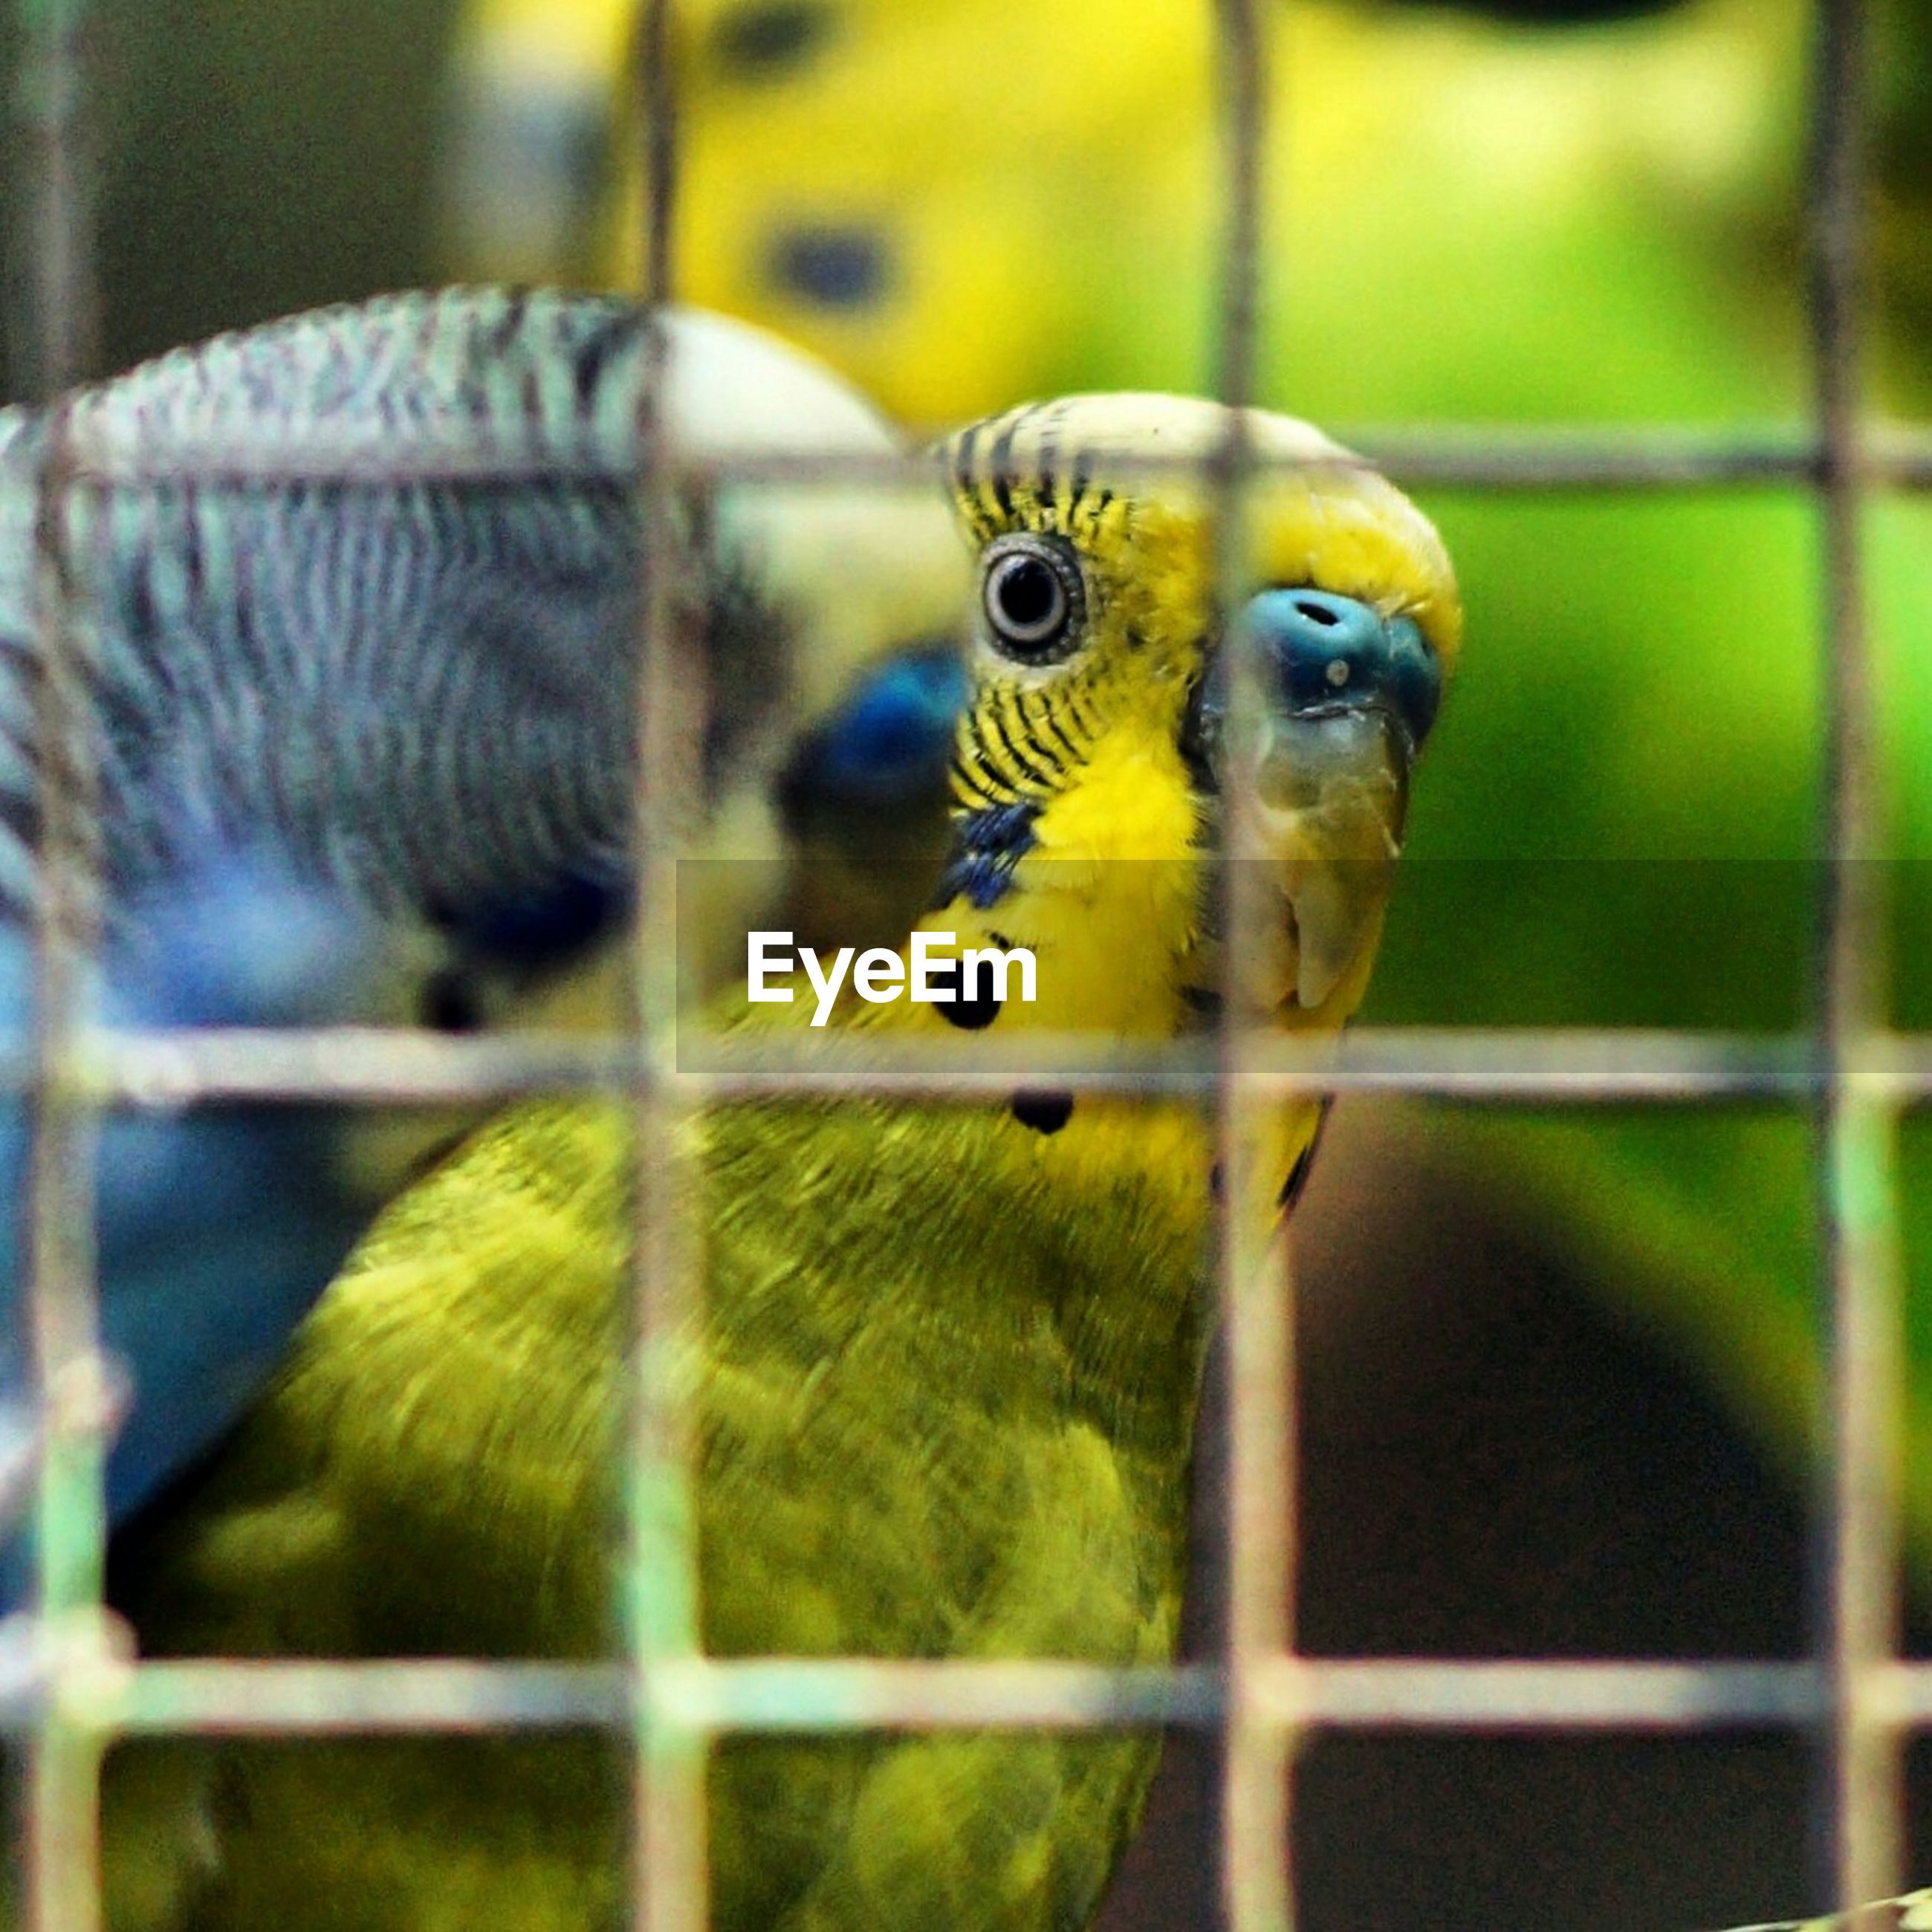 animal themes, one animal, animals in the wild, bird, wildlife, parrot, close-up, focus on foreground, animal head, beak, cage, perching, animals in captivity, yellow, zoo, multi colored, birdcage, looking, zoology, day